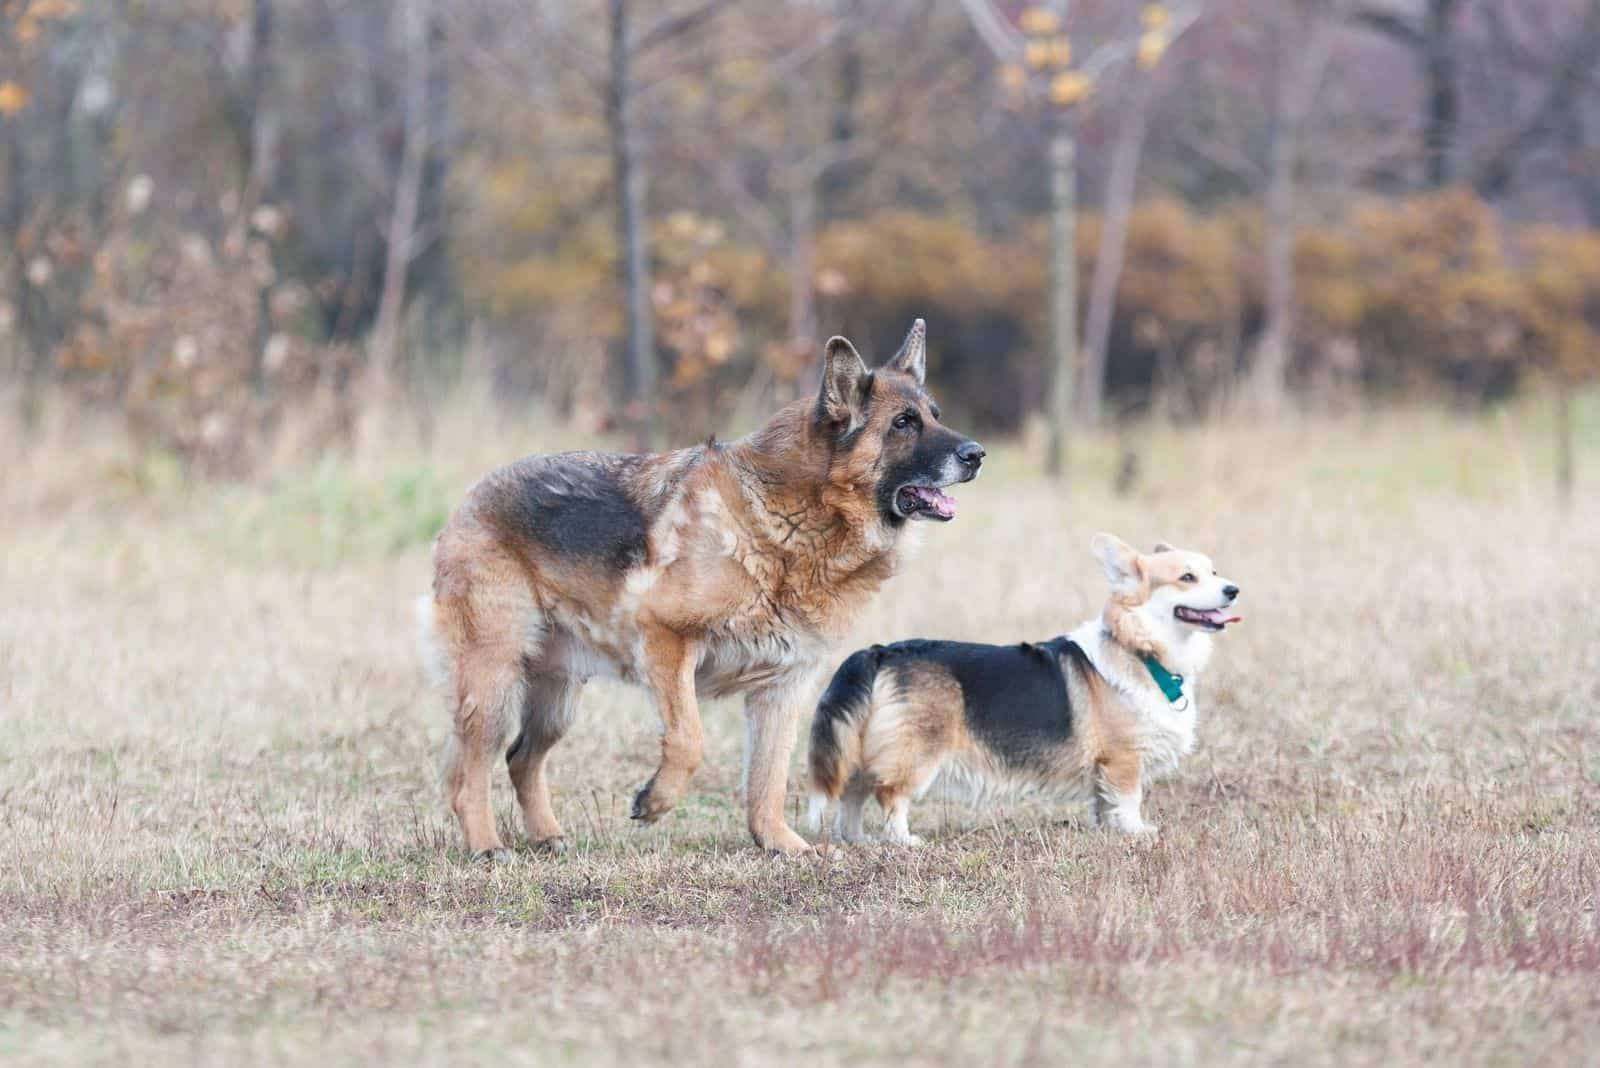 Two dogs breed German shepherd and Pembroke Welsh Corgi are in the Park